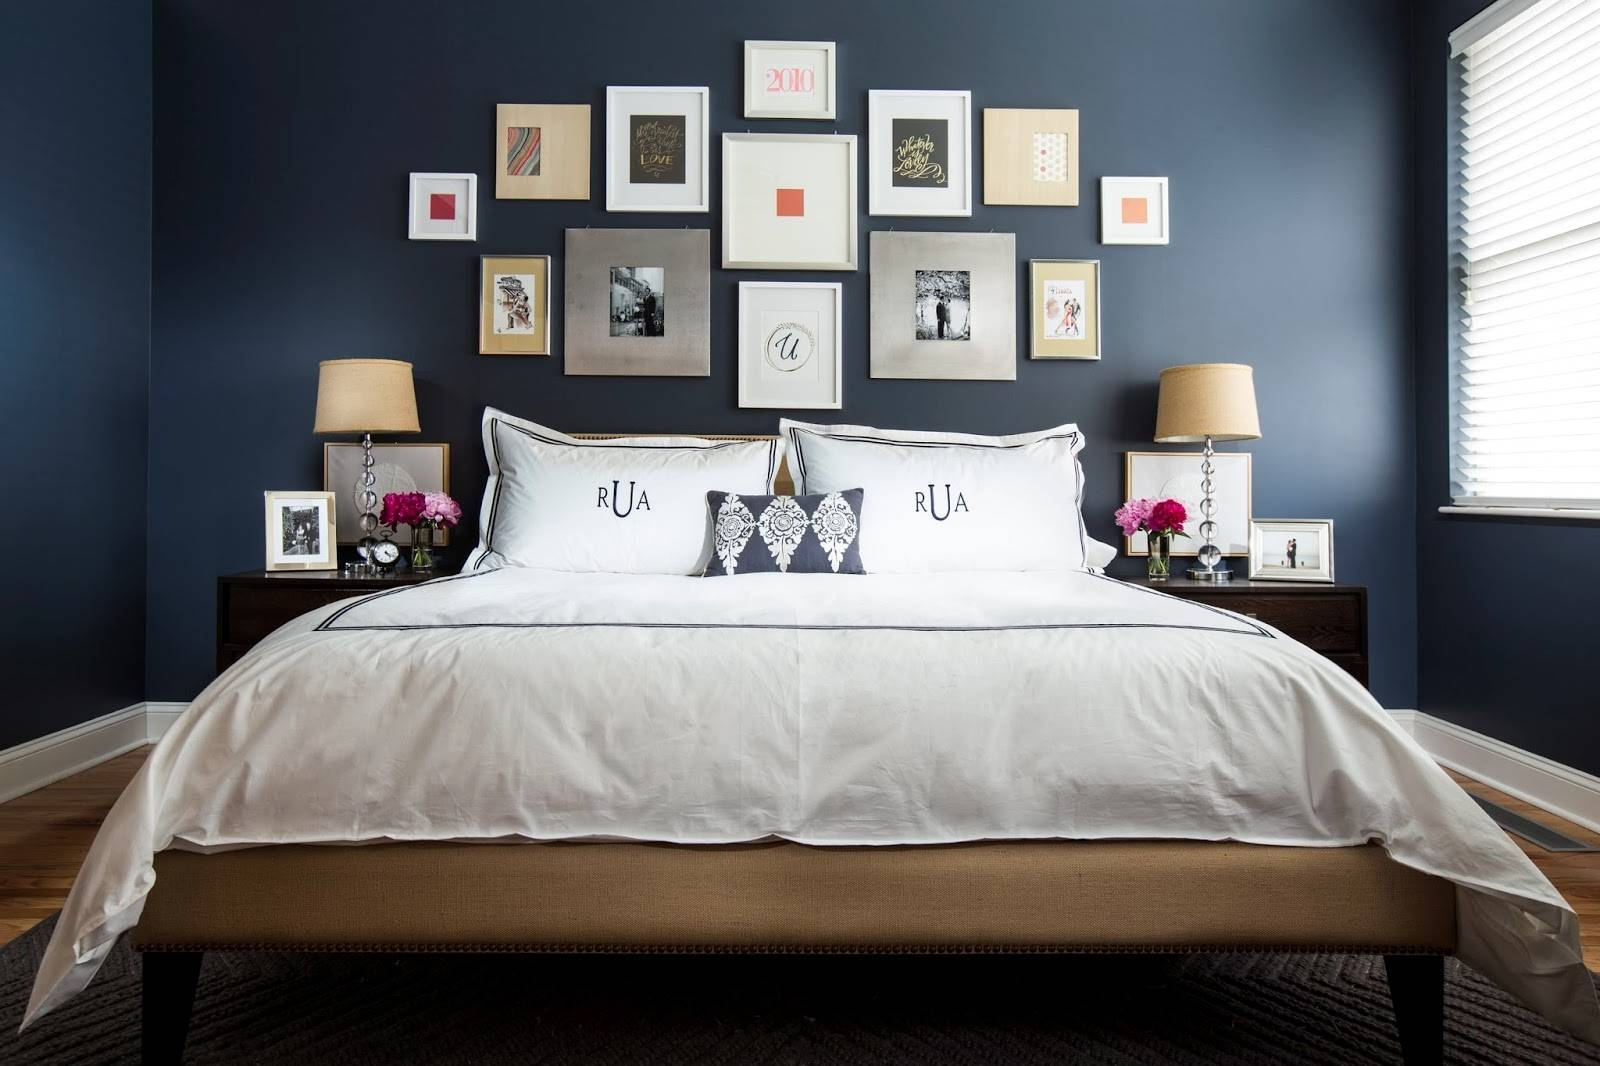 Full Of Framed Awesome Bedroom Design With Wall Art Over Bed Feat With Best And Newest Bed Wall Art (View 17 of 25)